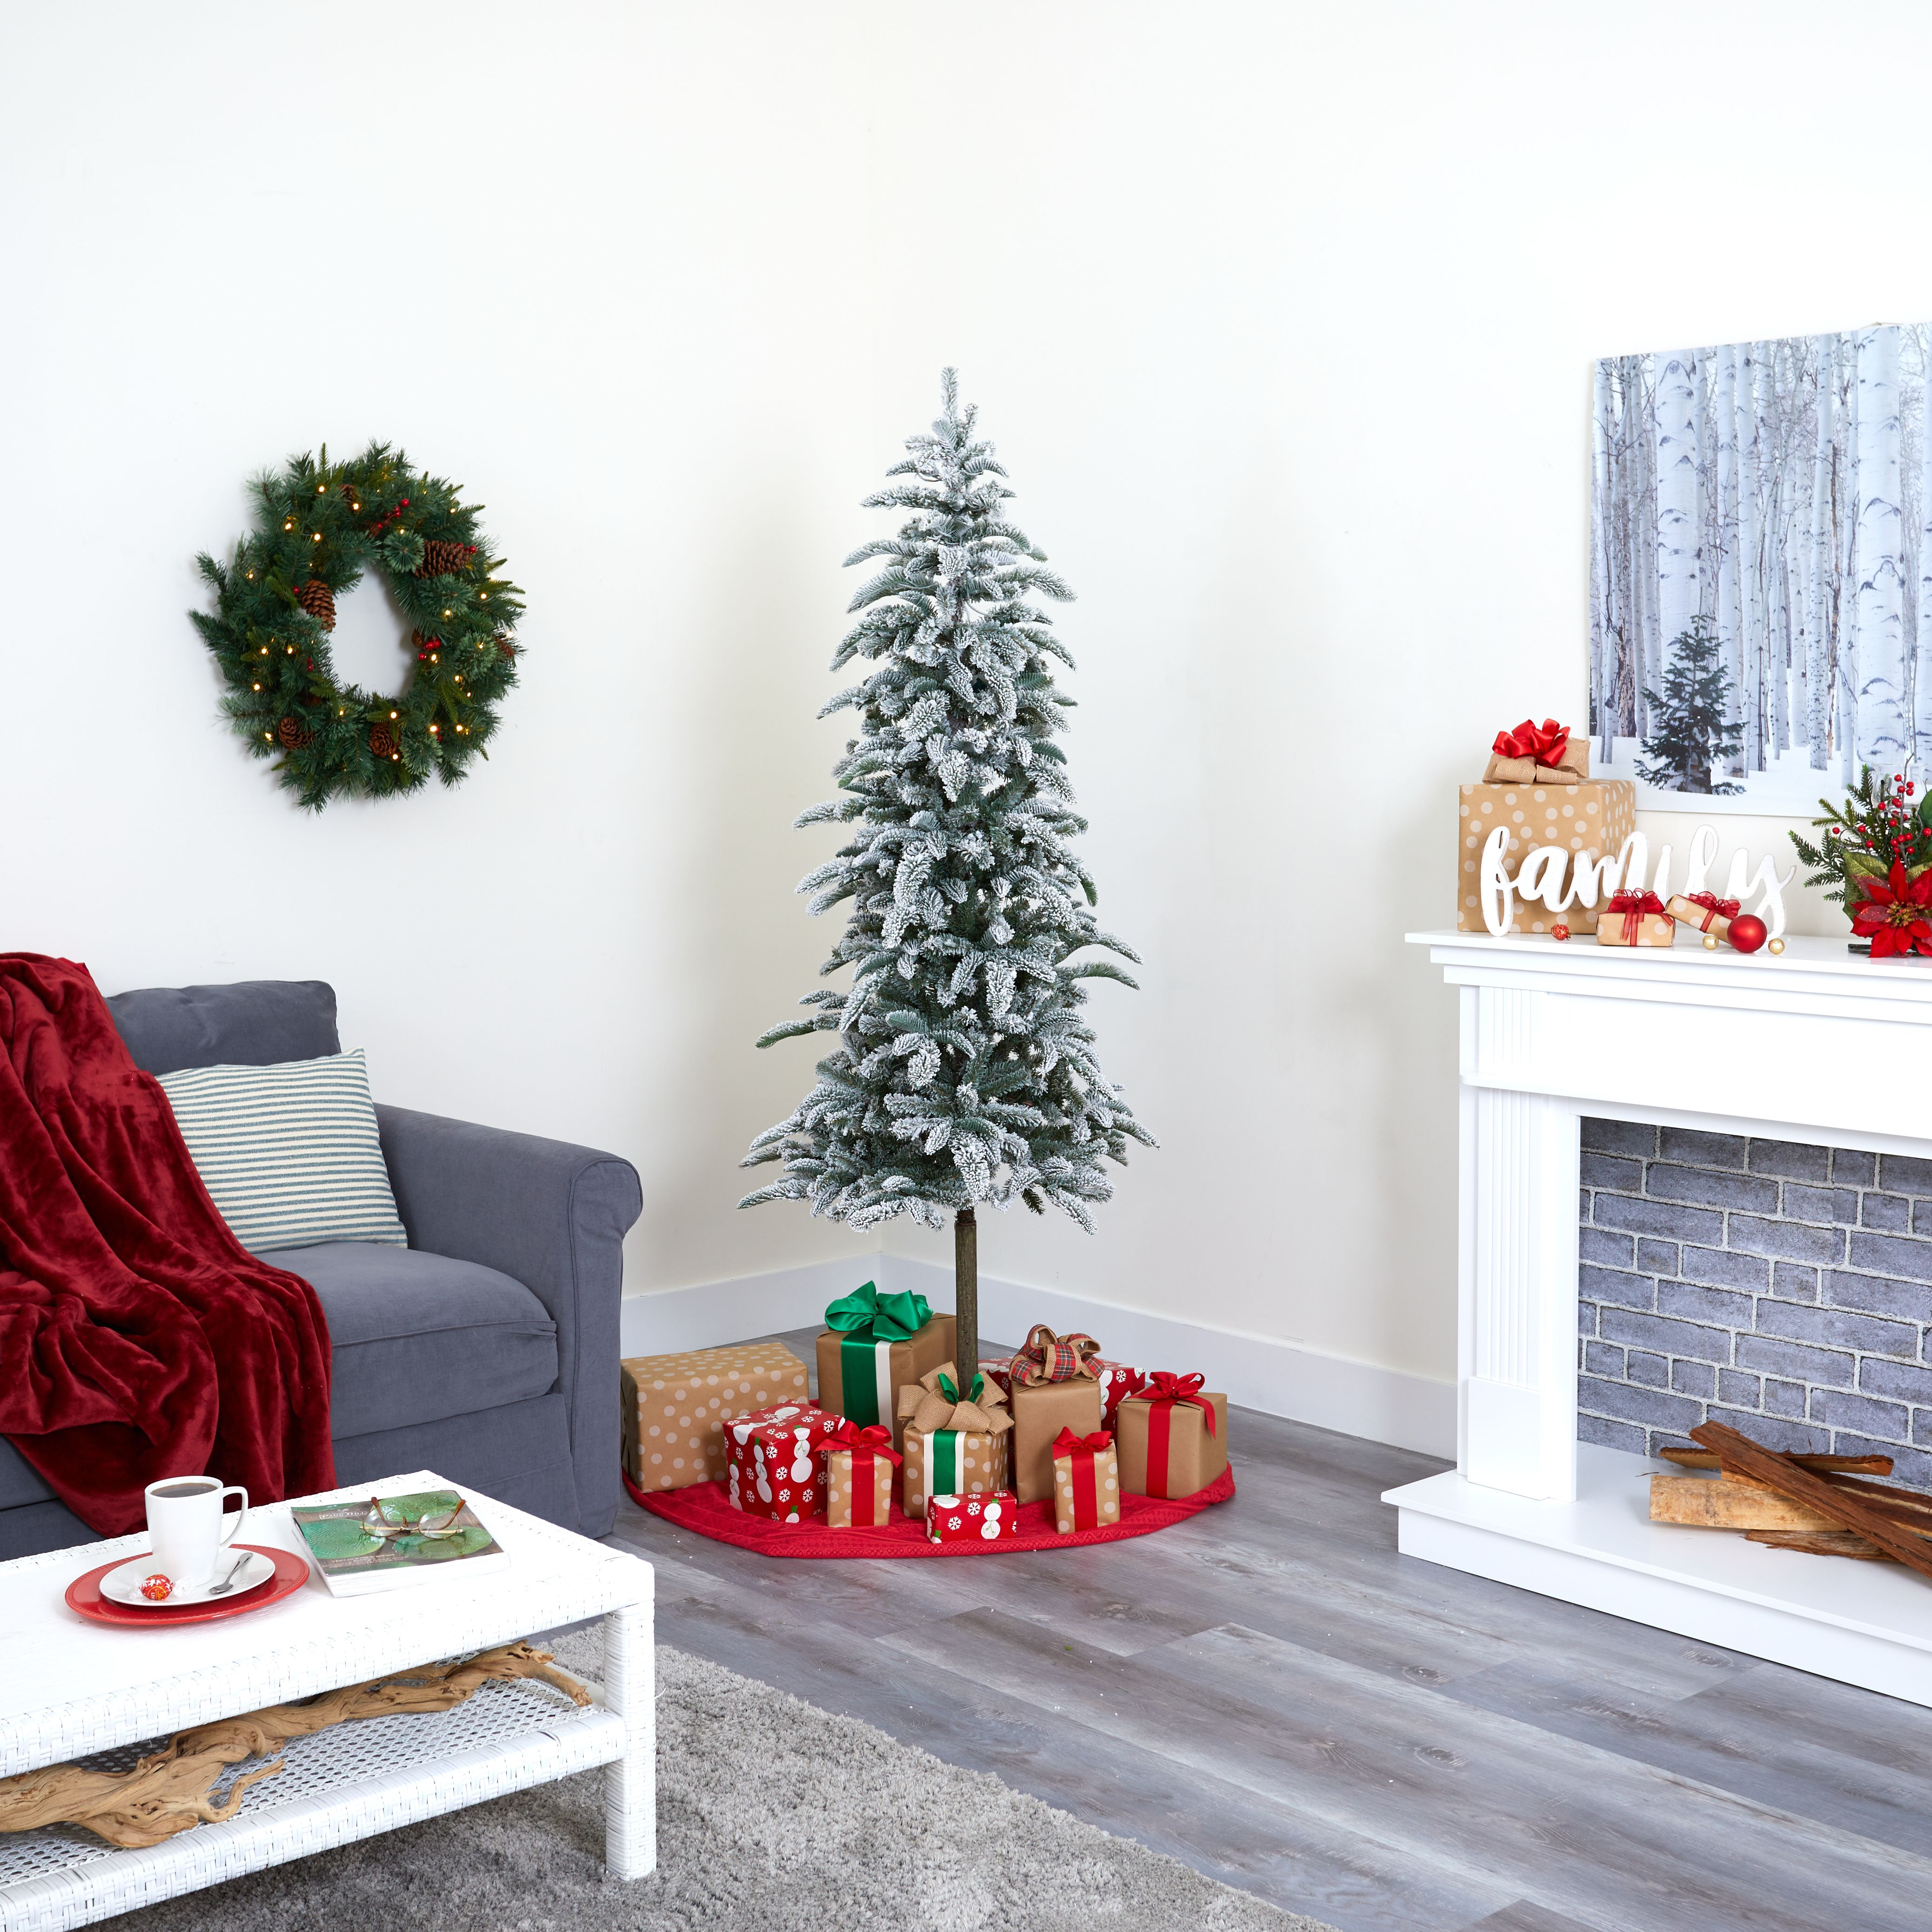 Albero Di Natale Washington Deluxe.6 5 Flocked Washington Alpine Christmas Artificial Tree With 250 White Warm Led Lights And 637 Bendable Branches In 2020 Fake Christmas Trees Artificial Christmas Tree Christmas Tree